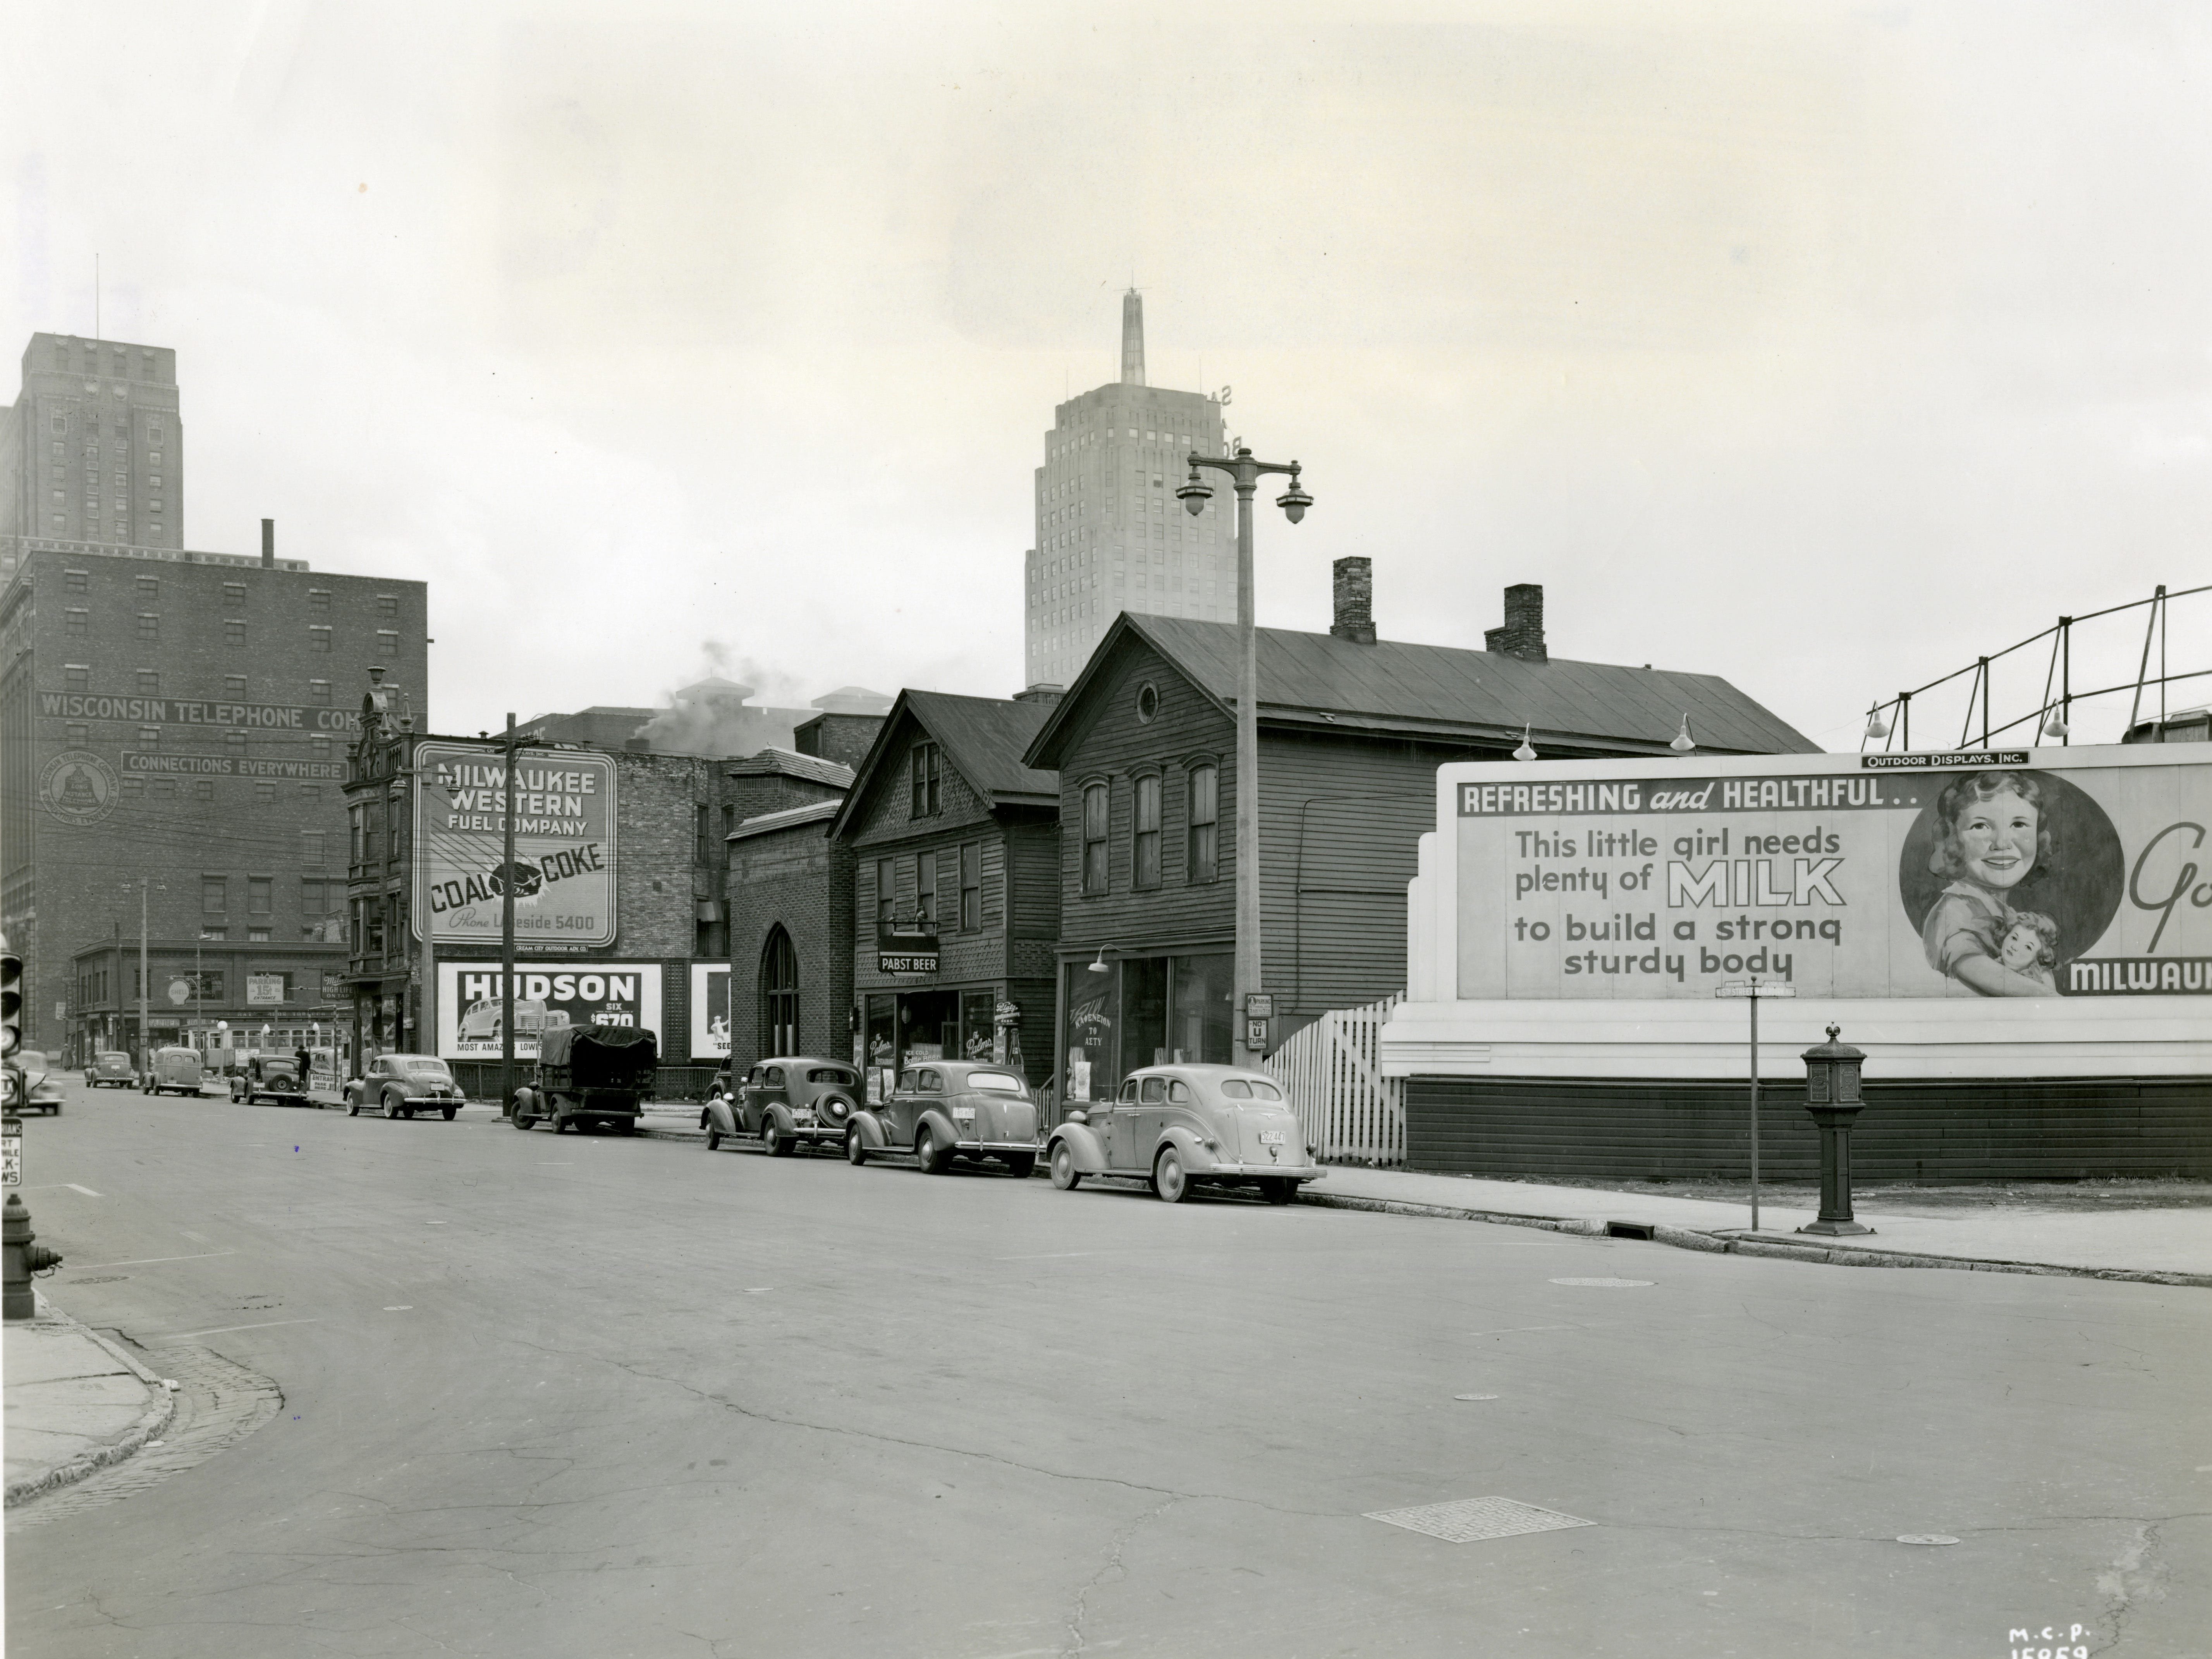 By 1940, fortunes were again turning for the dairy industry. Billboards like this one near 5th Street and Wisconsin Avenue touted the importance of milk to a child's growth and development.